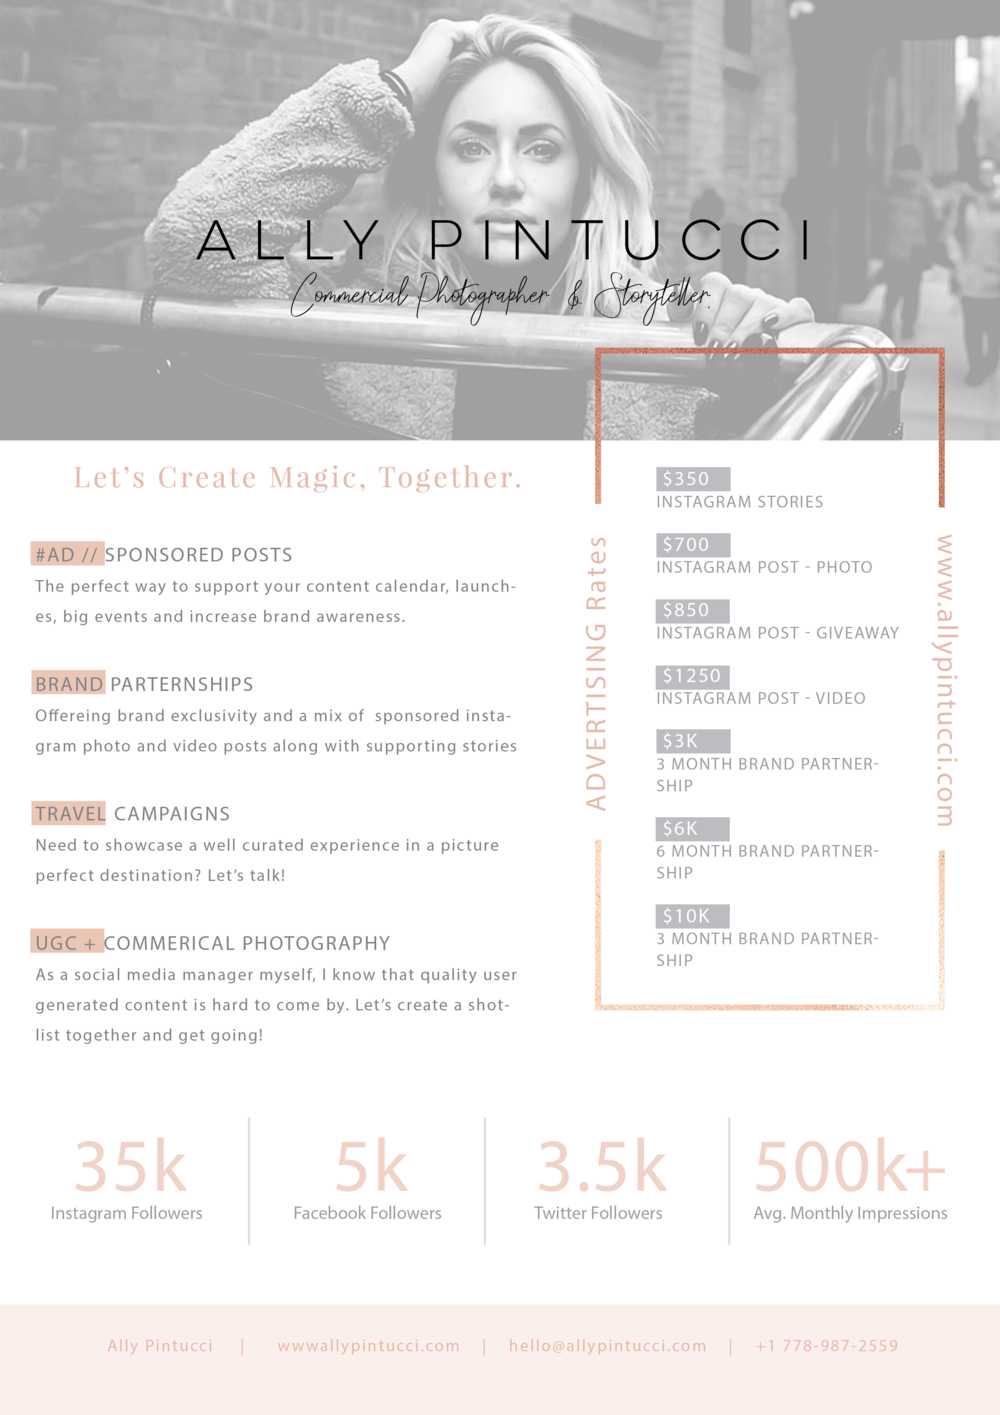 AllyPintucci - Rate Card 2019.png